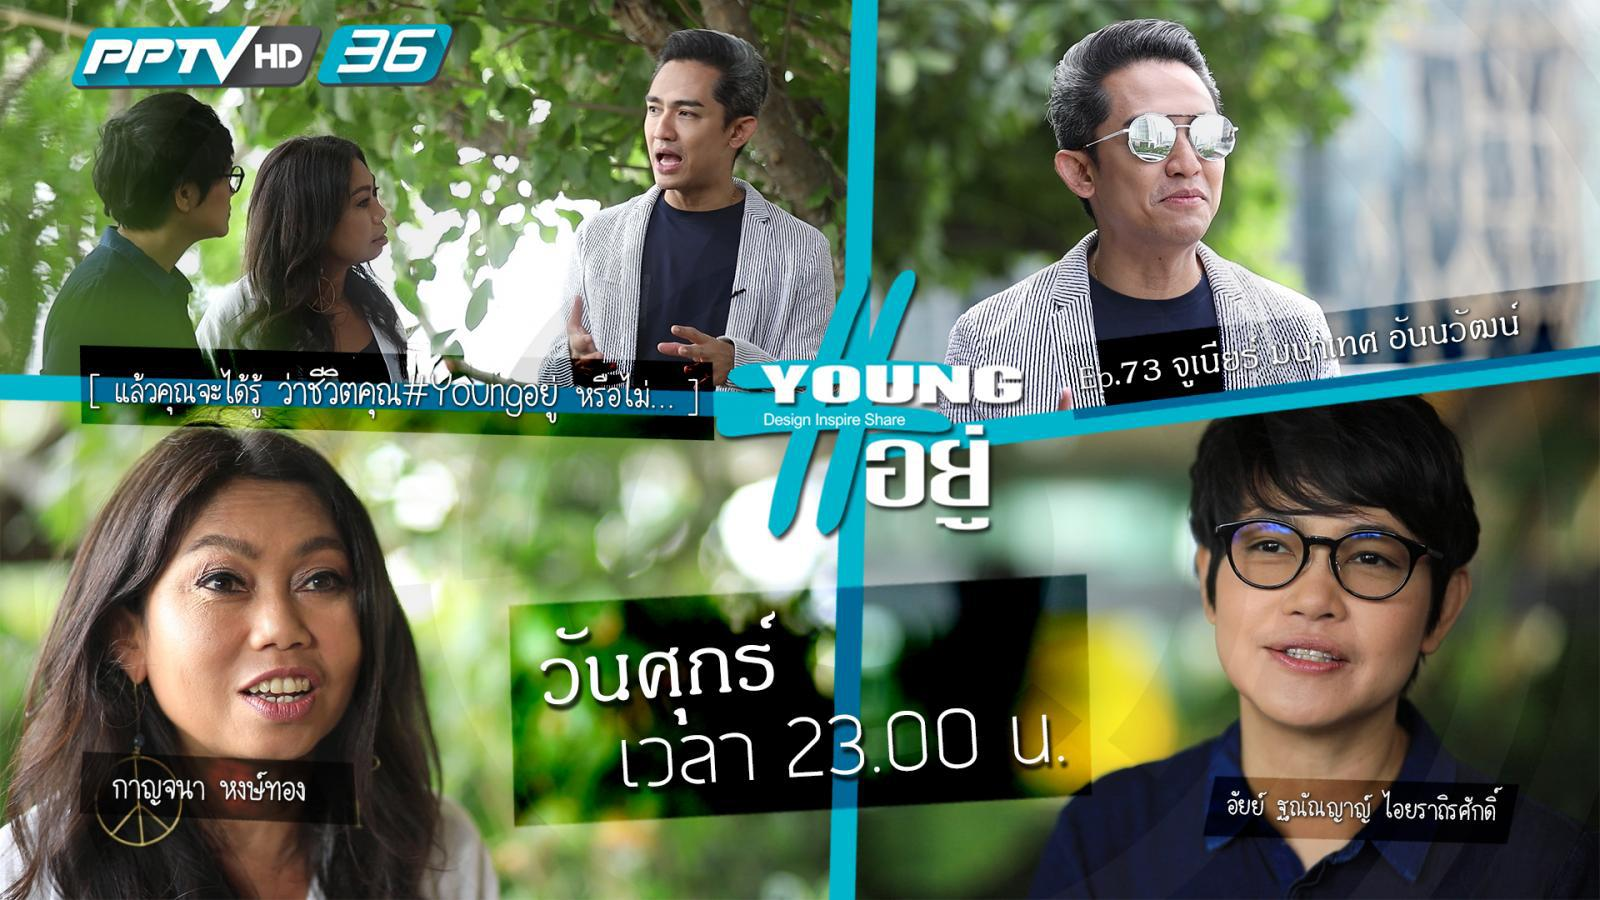 Young อยู่